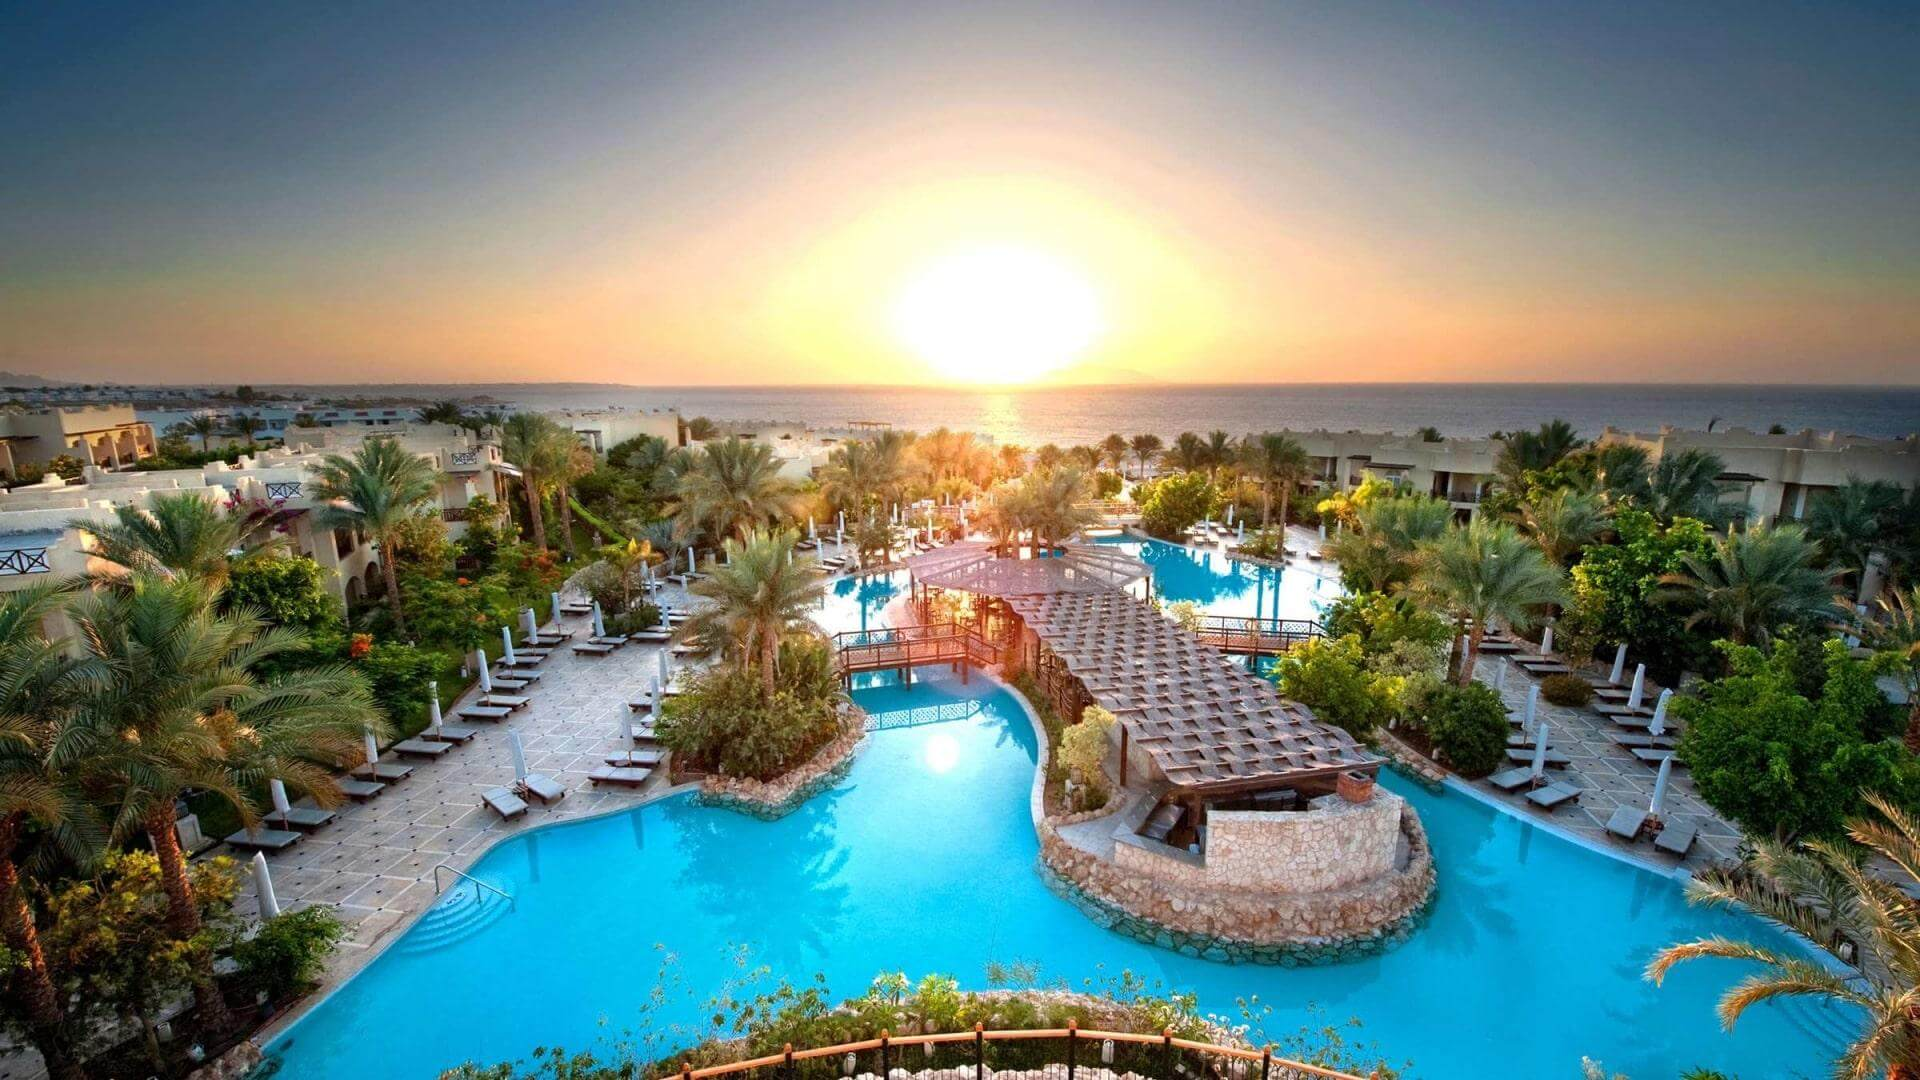 Фото отеля The Grand Hotel Sharm El Sheikh 5* в Шарме